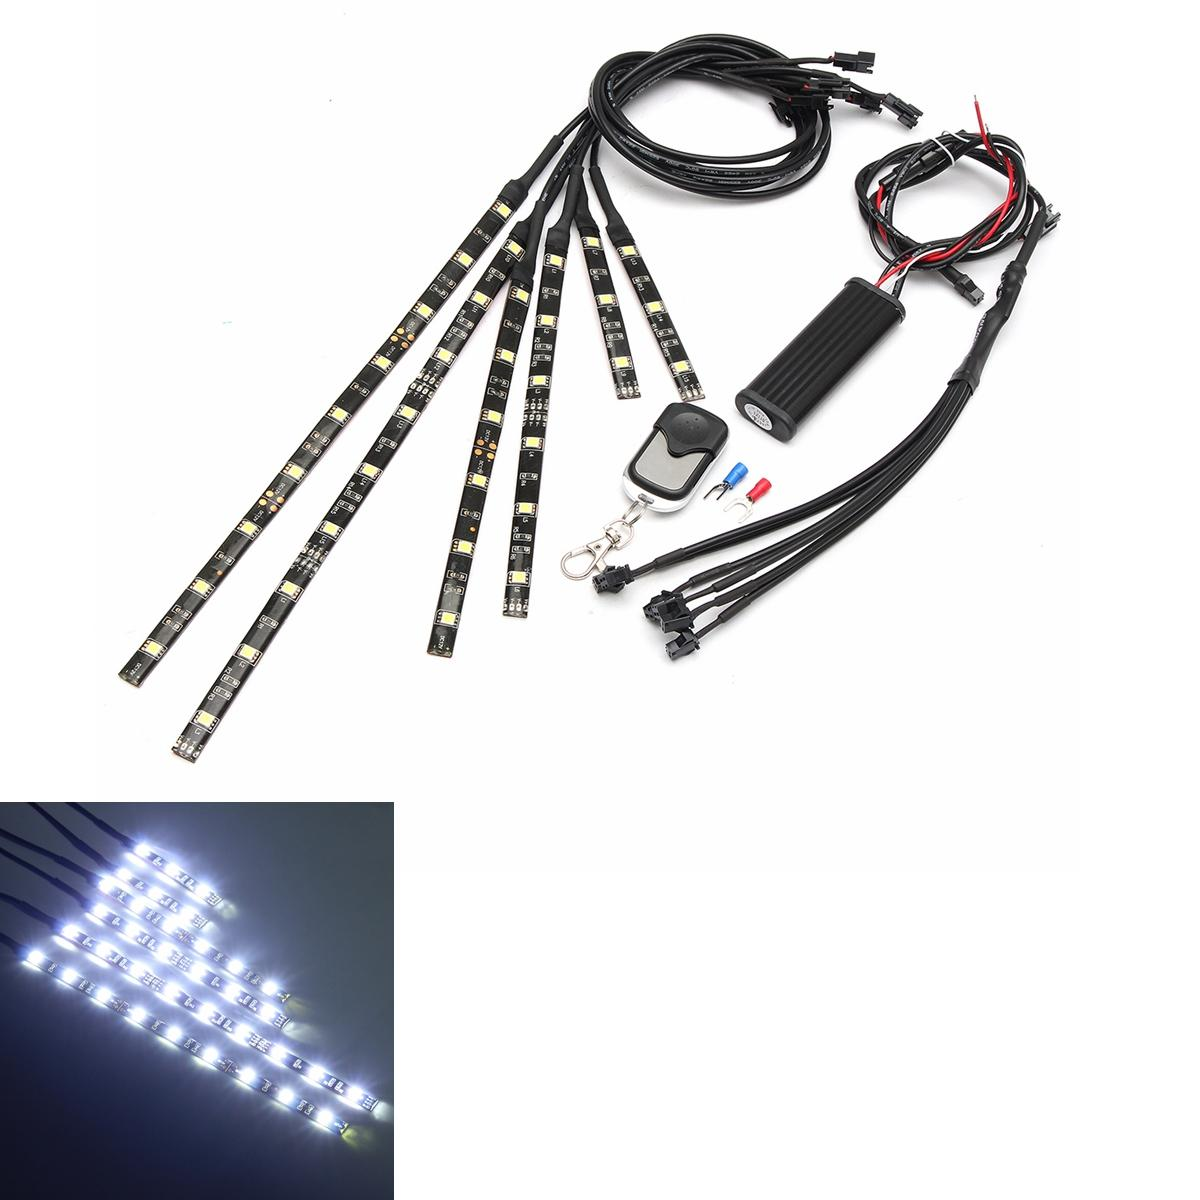 6x White 18LEDs Wireless Remote Car Motorcycle Frame Lights Flexible Neon Strips